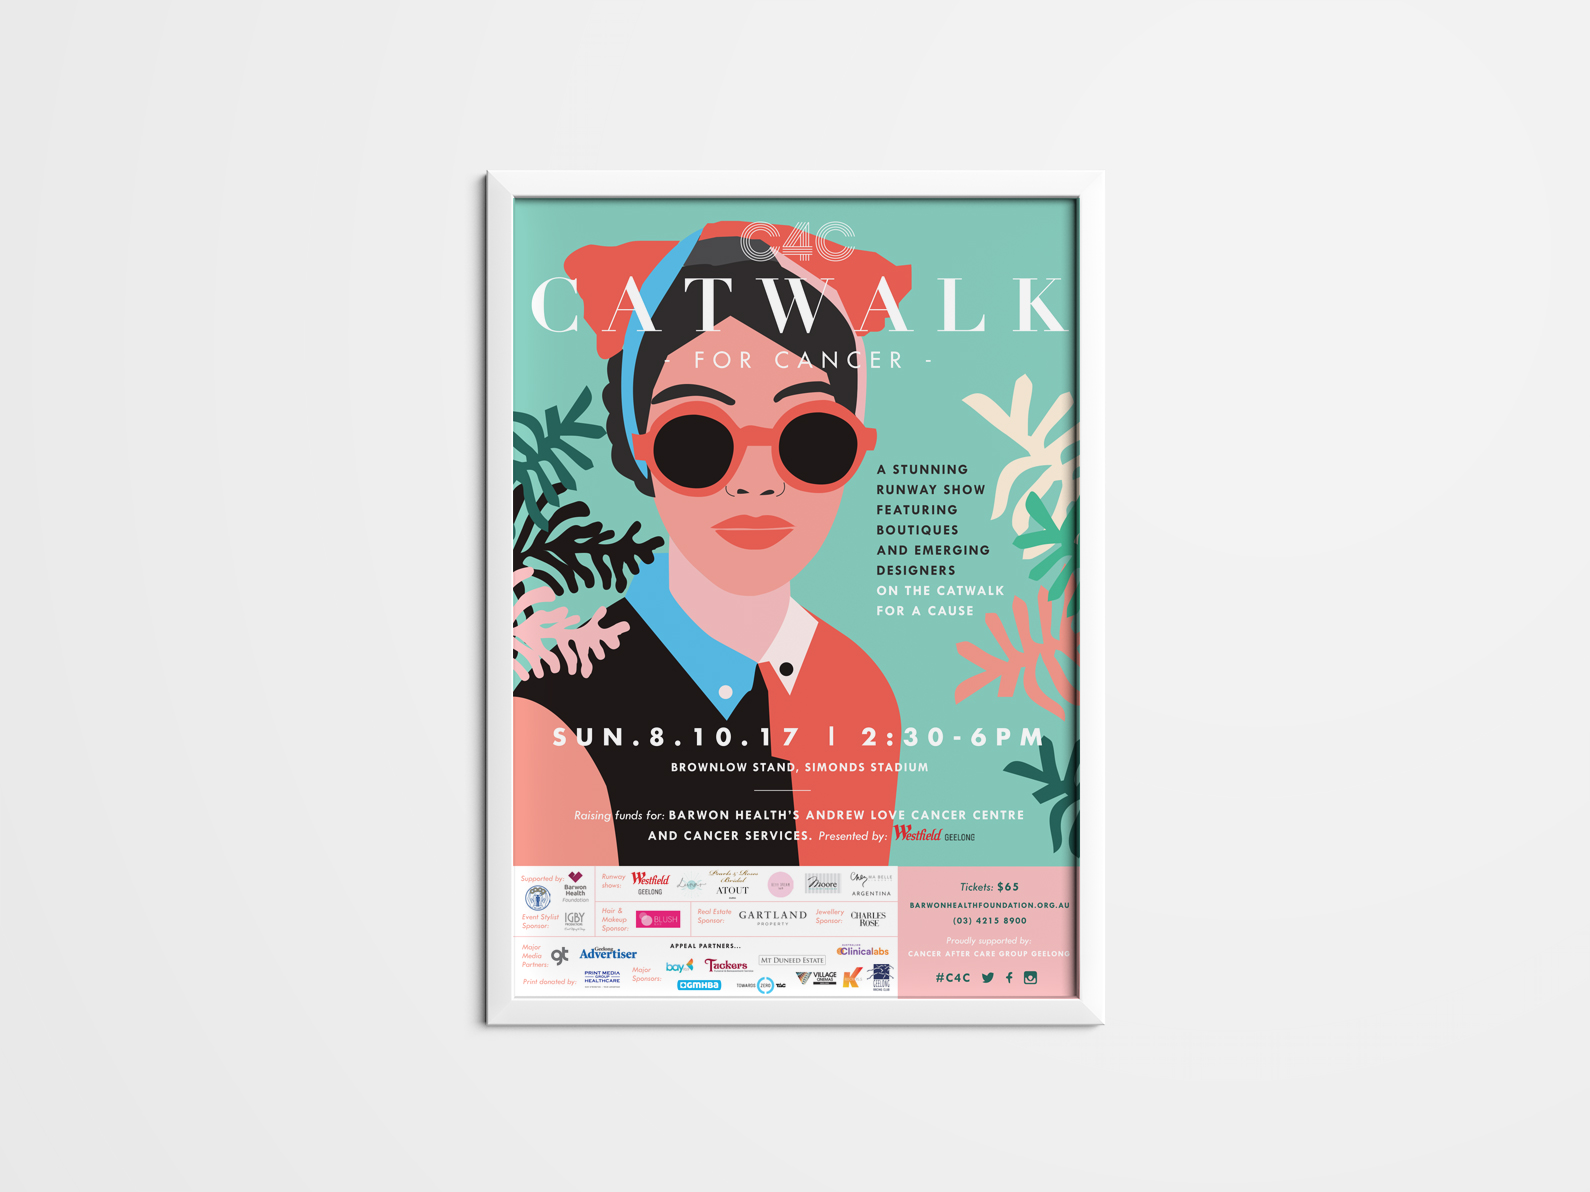 Studio-Mimi-MOon-Catwalk-for-Cancer-Event-Design-&-Identity-&-Publication-Design-Poster-A3-2